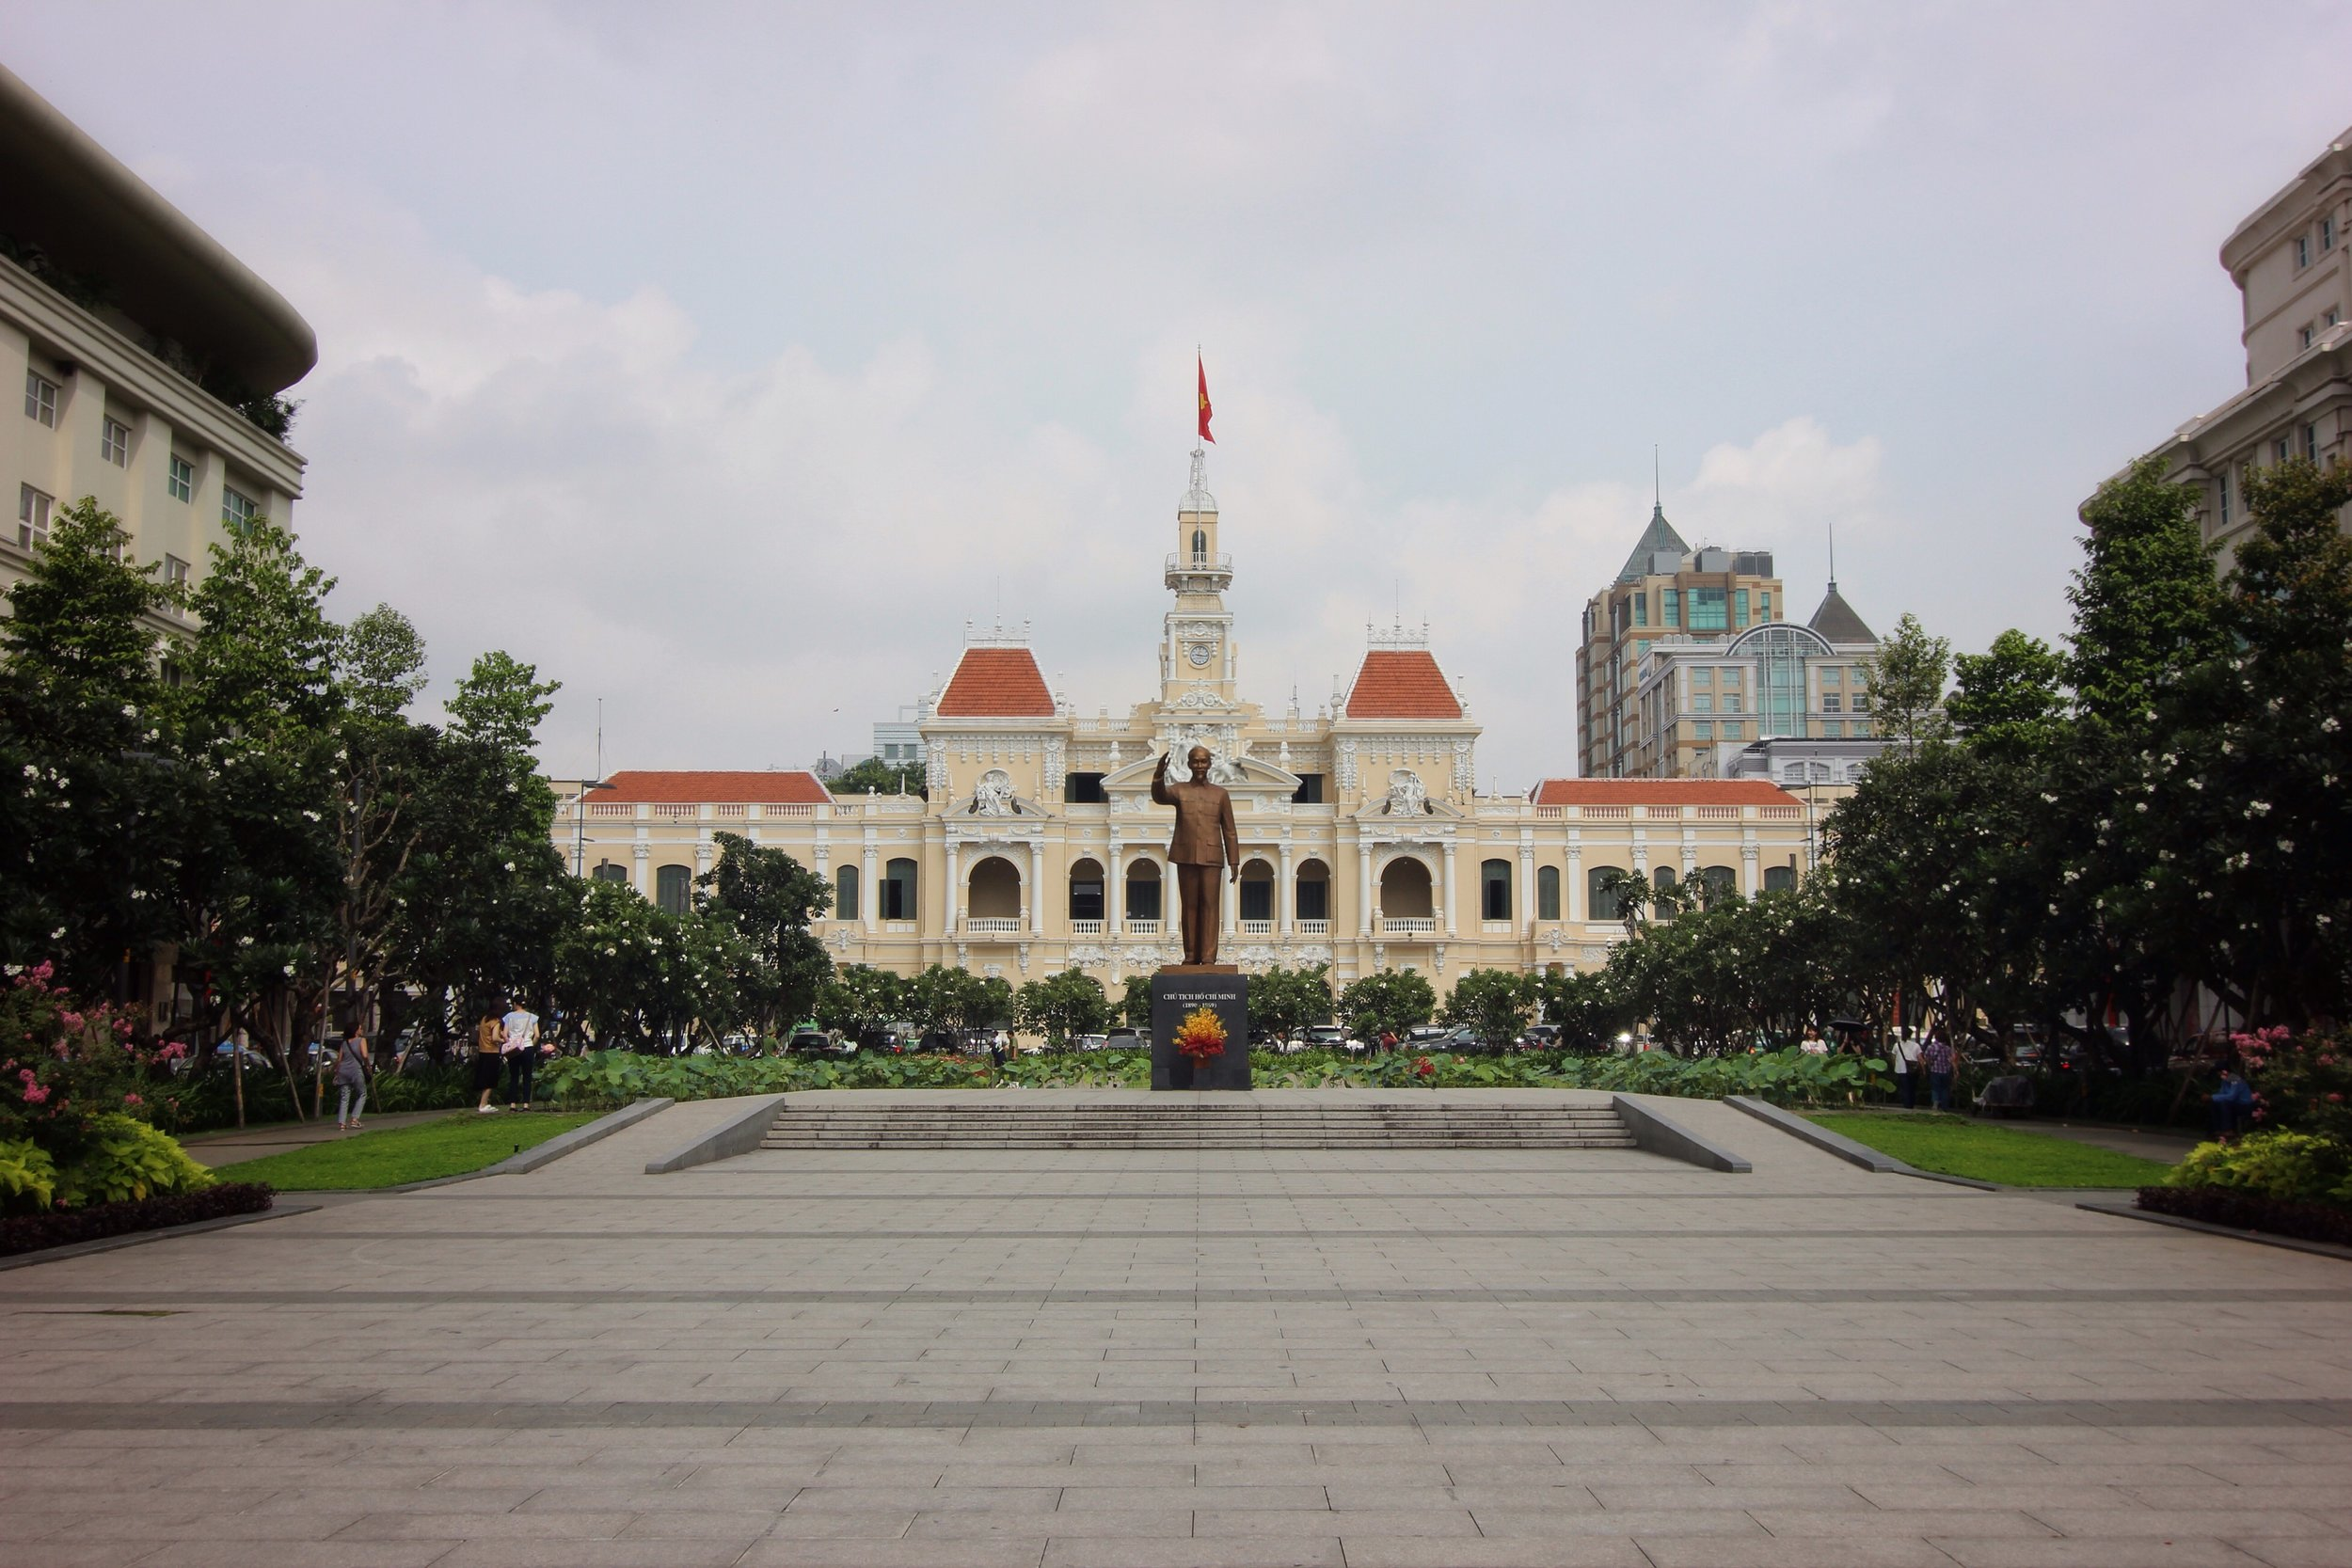 City hall, with statue of Ho Chi Minh.